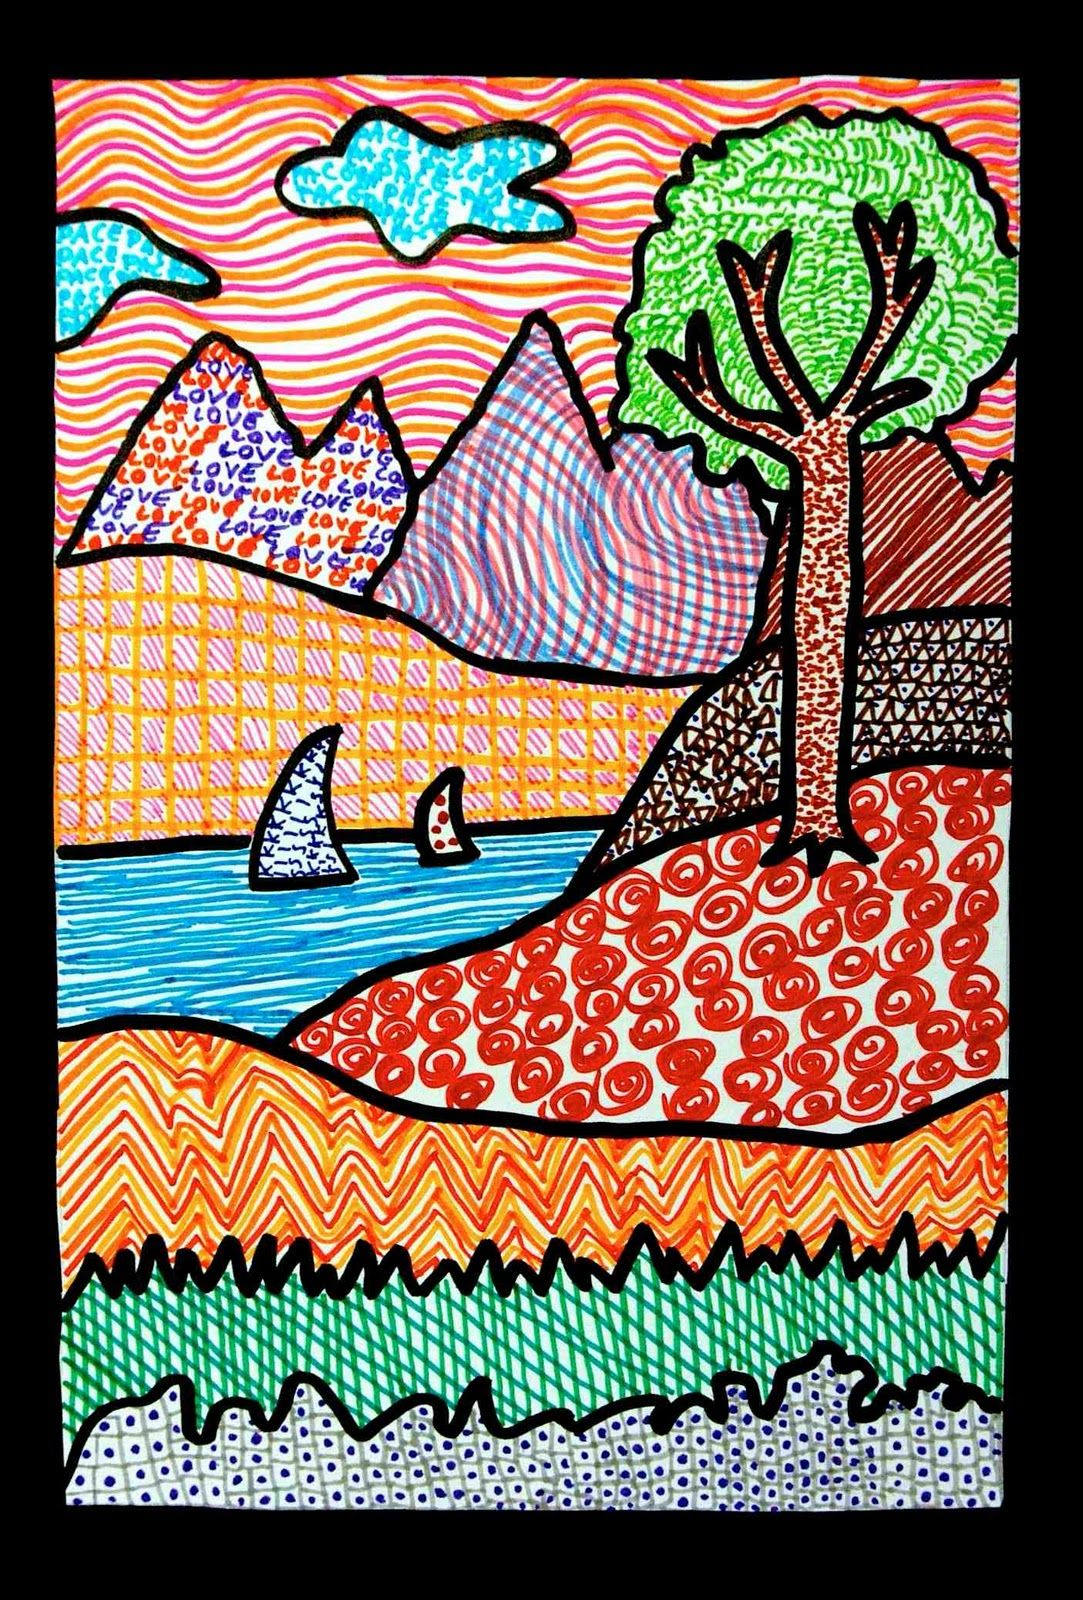 Elementary Art Line Design : Landscapes of texture look closely and you ll see the